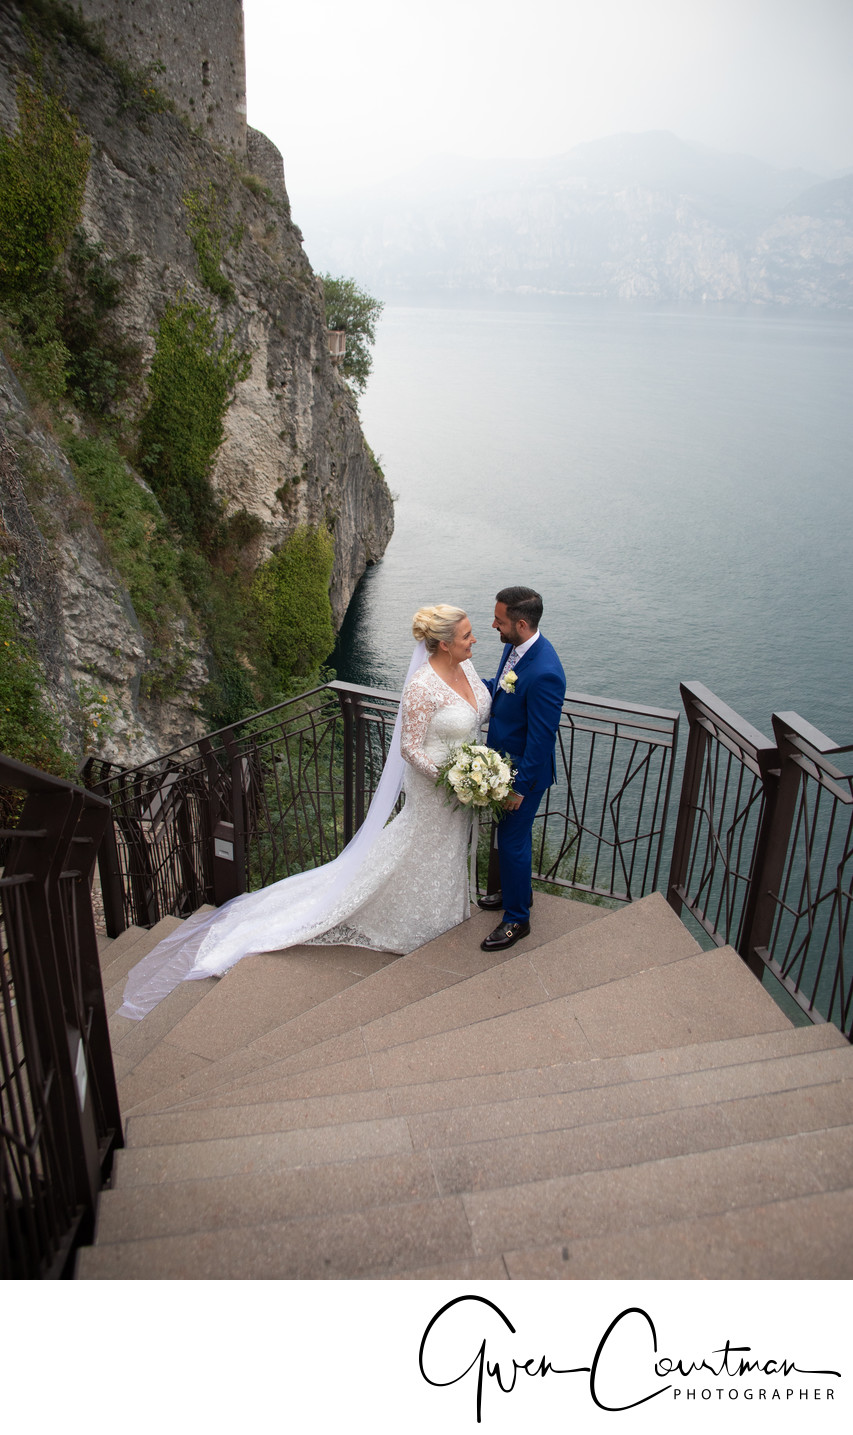 Leanne & Ricky, Malcesine Castle Theatre Steps.